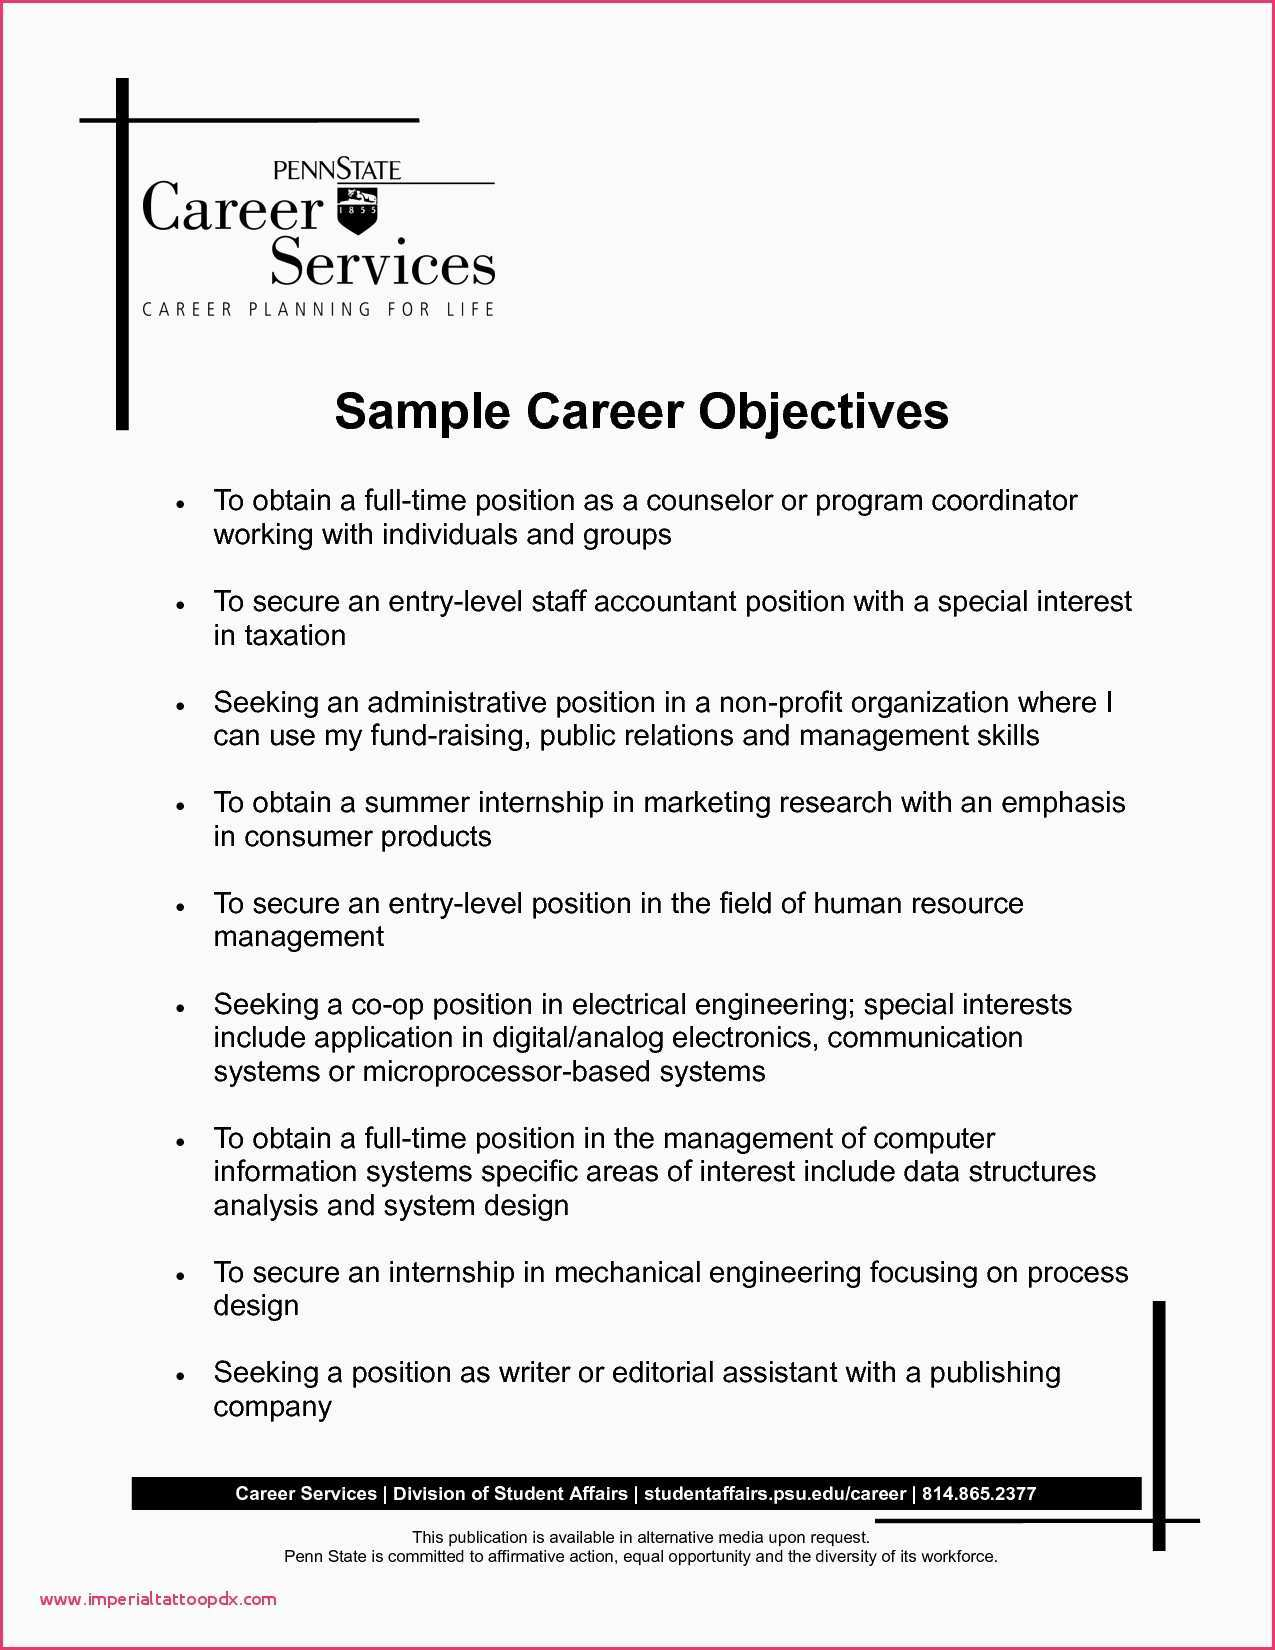 Career Center Resume - 52 Sample Career Objective In Resume for Freshers